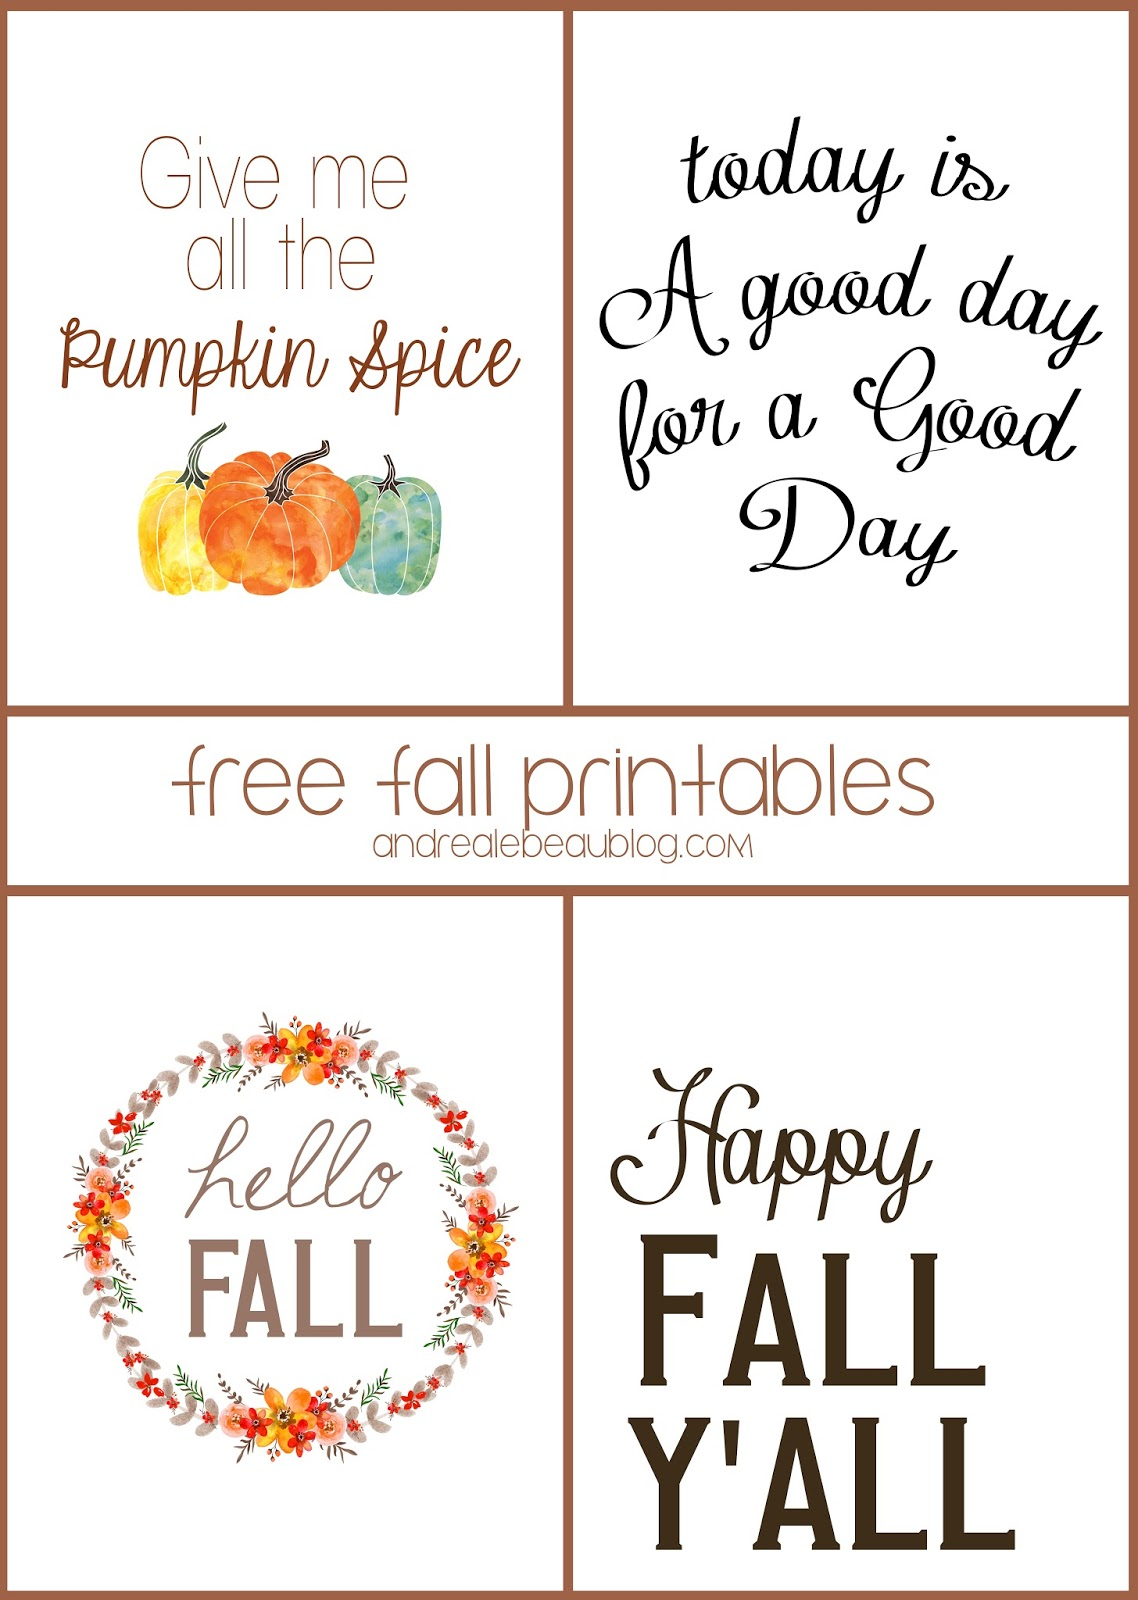 Amazing image in free fall printable